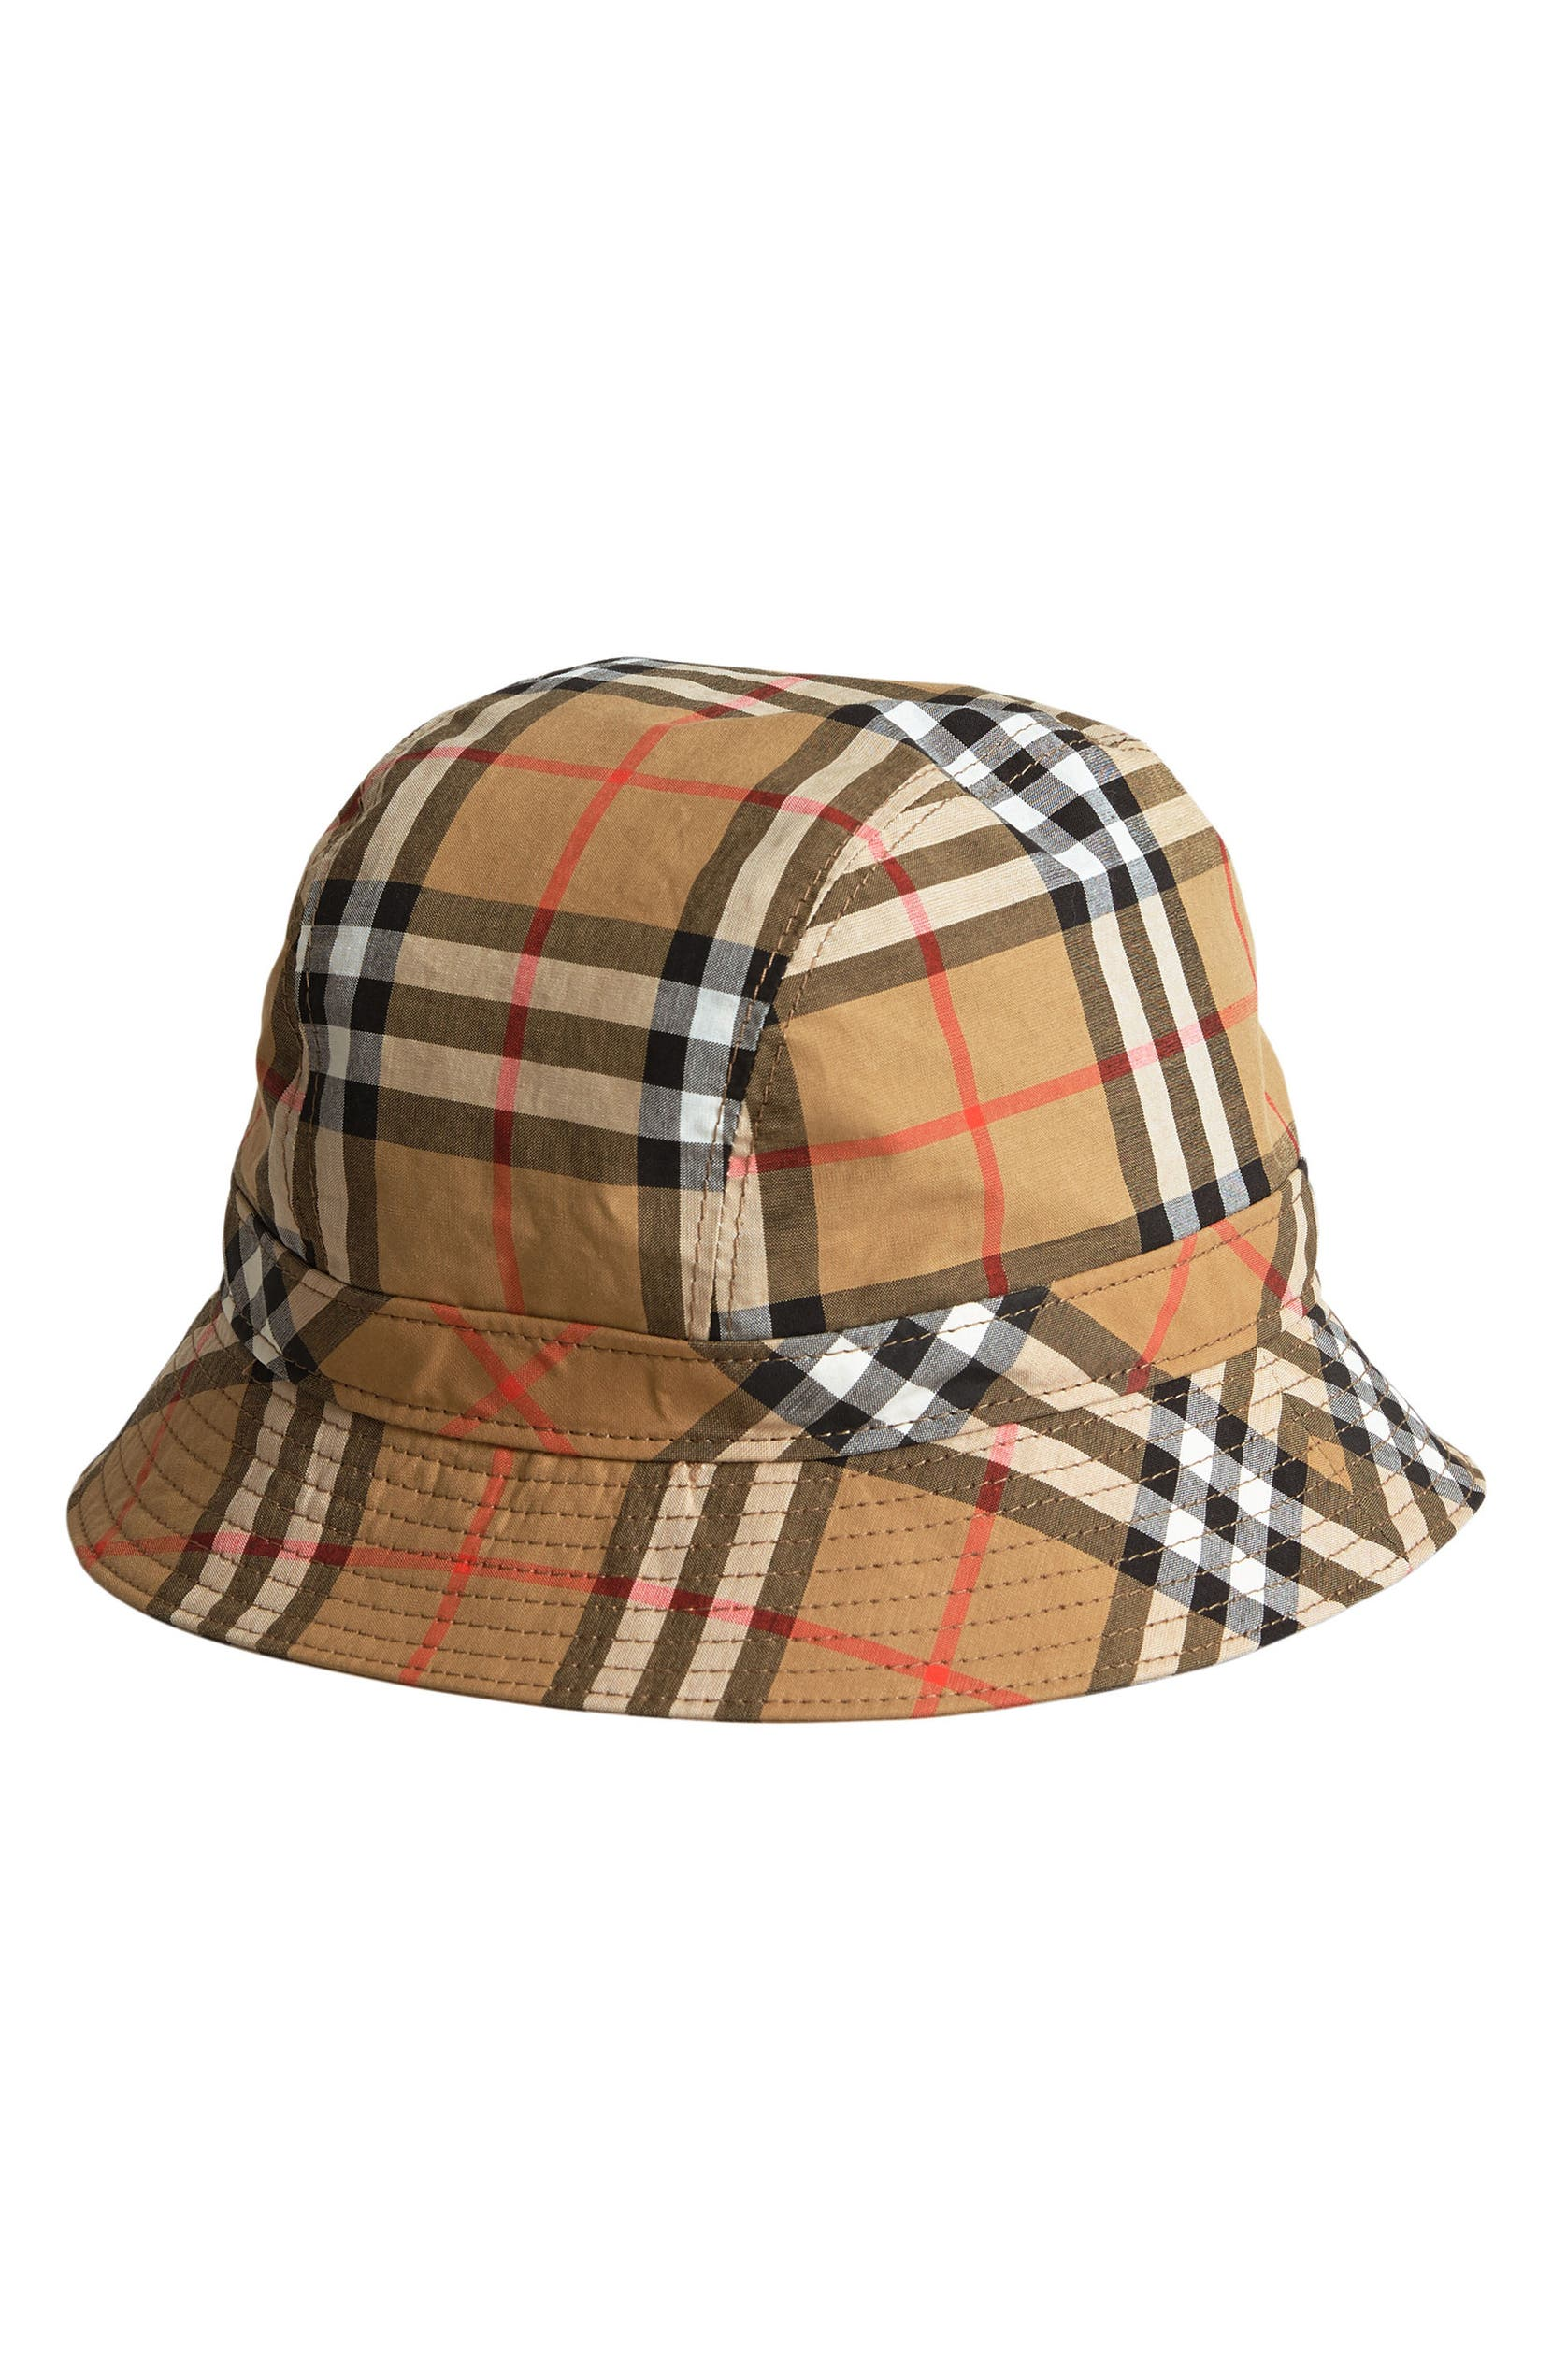 Burberry Vintage Check Bucket Hat  75120523d95